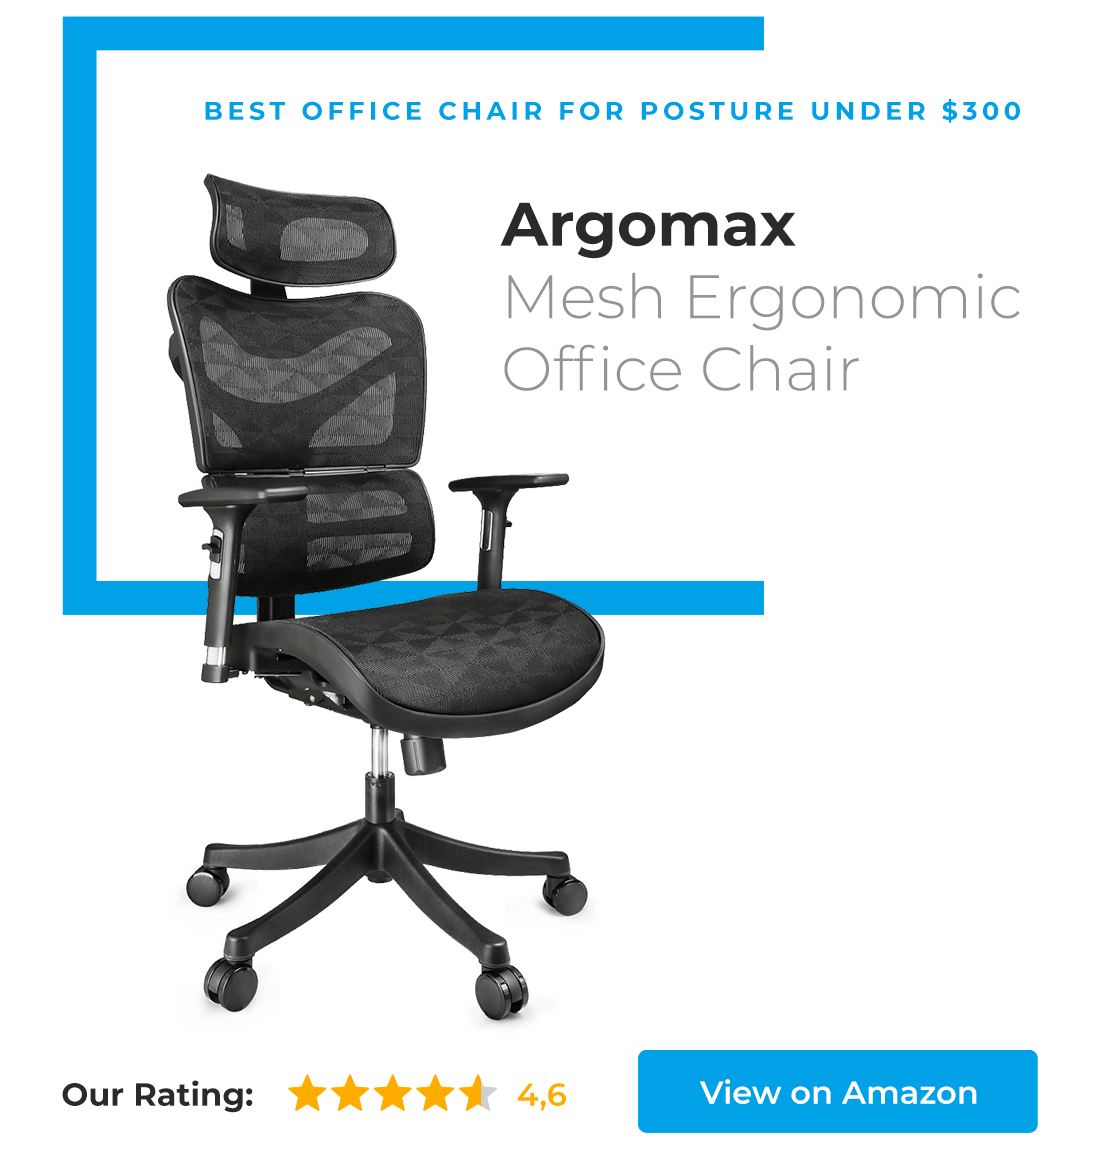 Argomax is best office chair for posture under $300